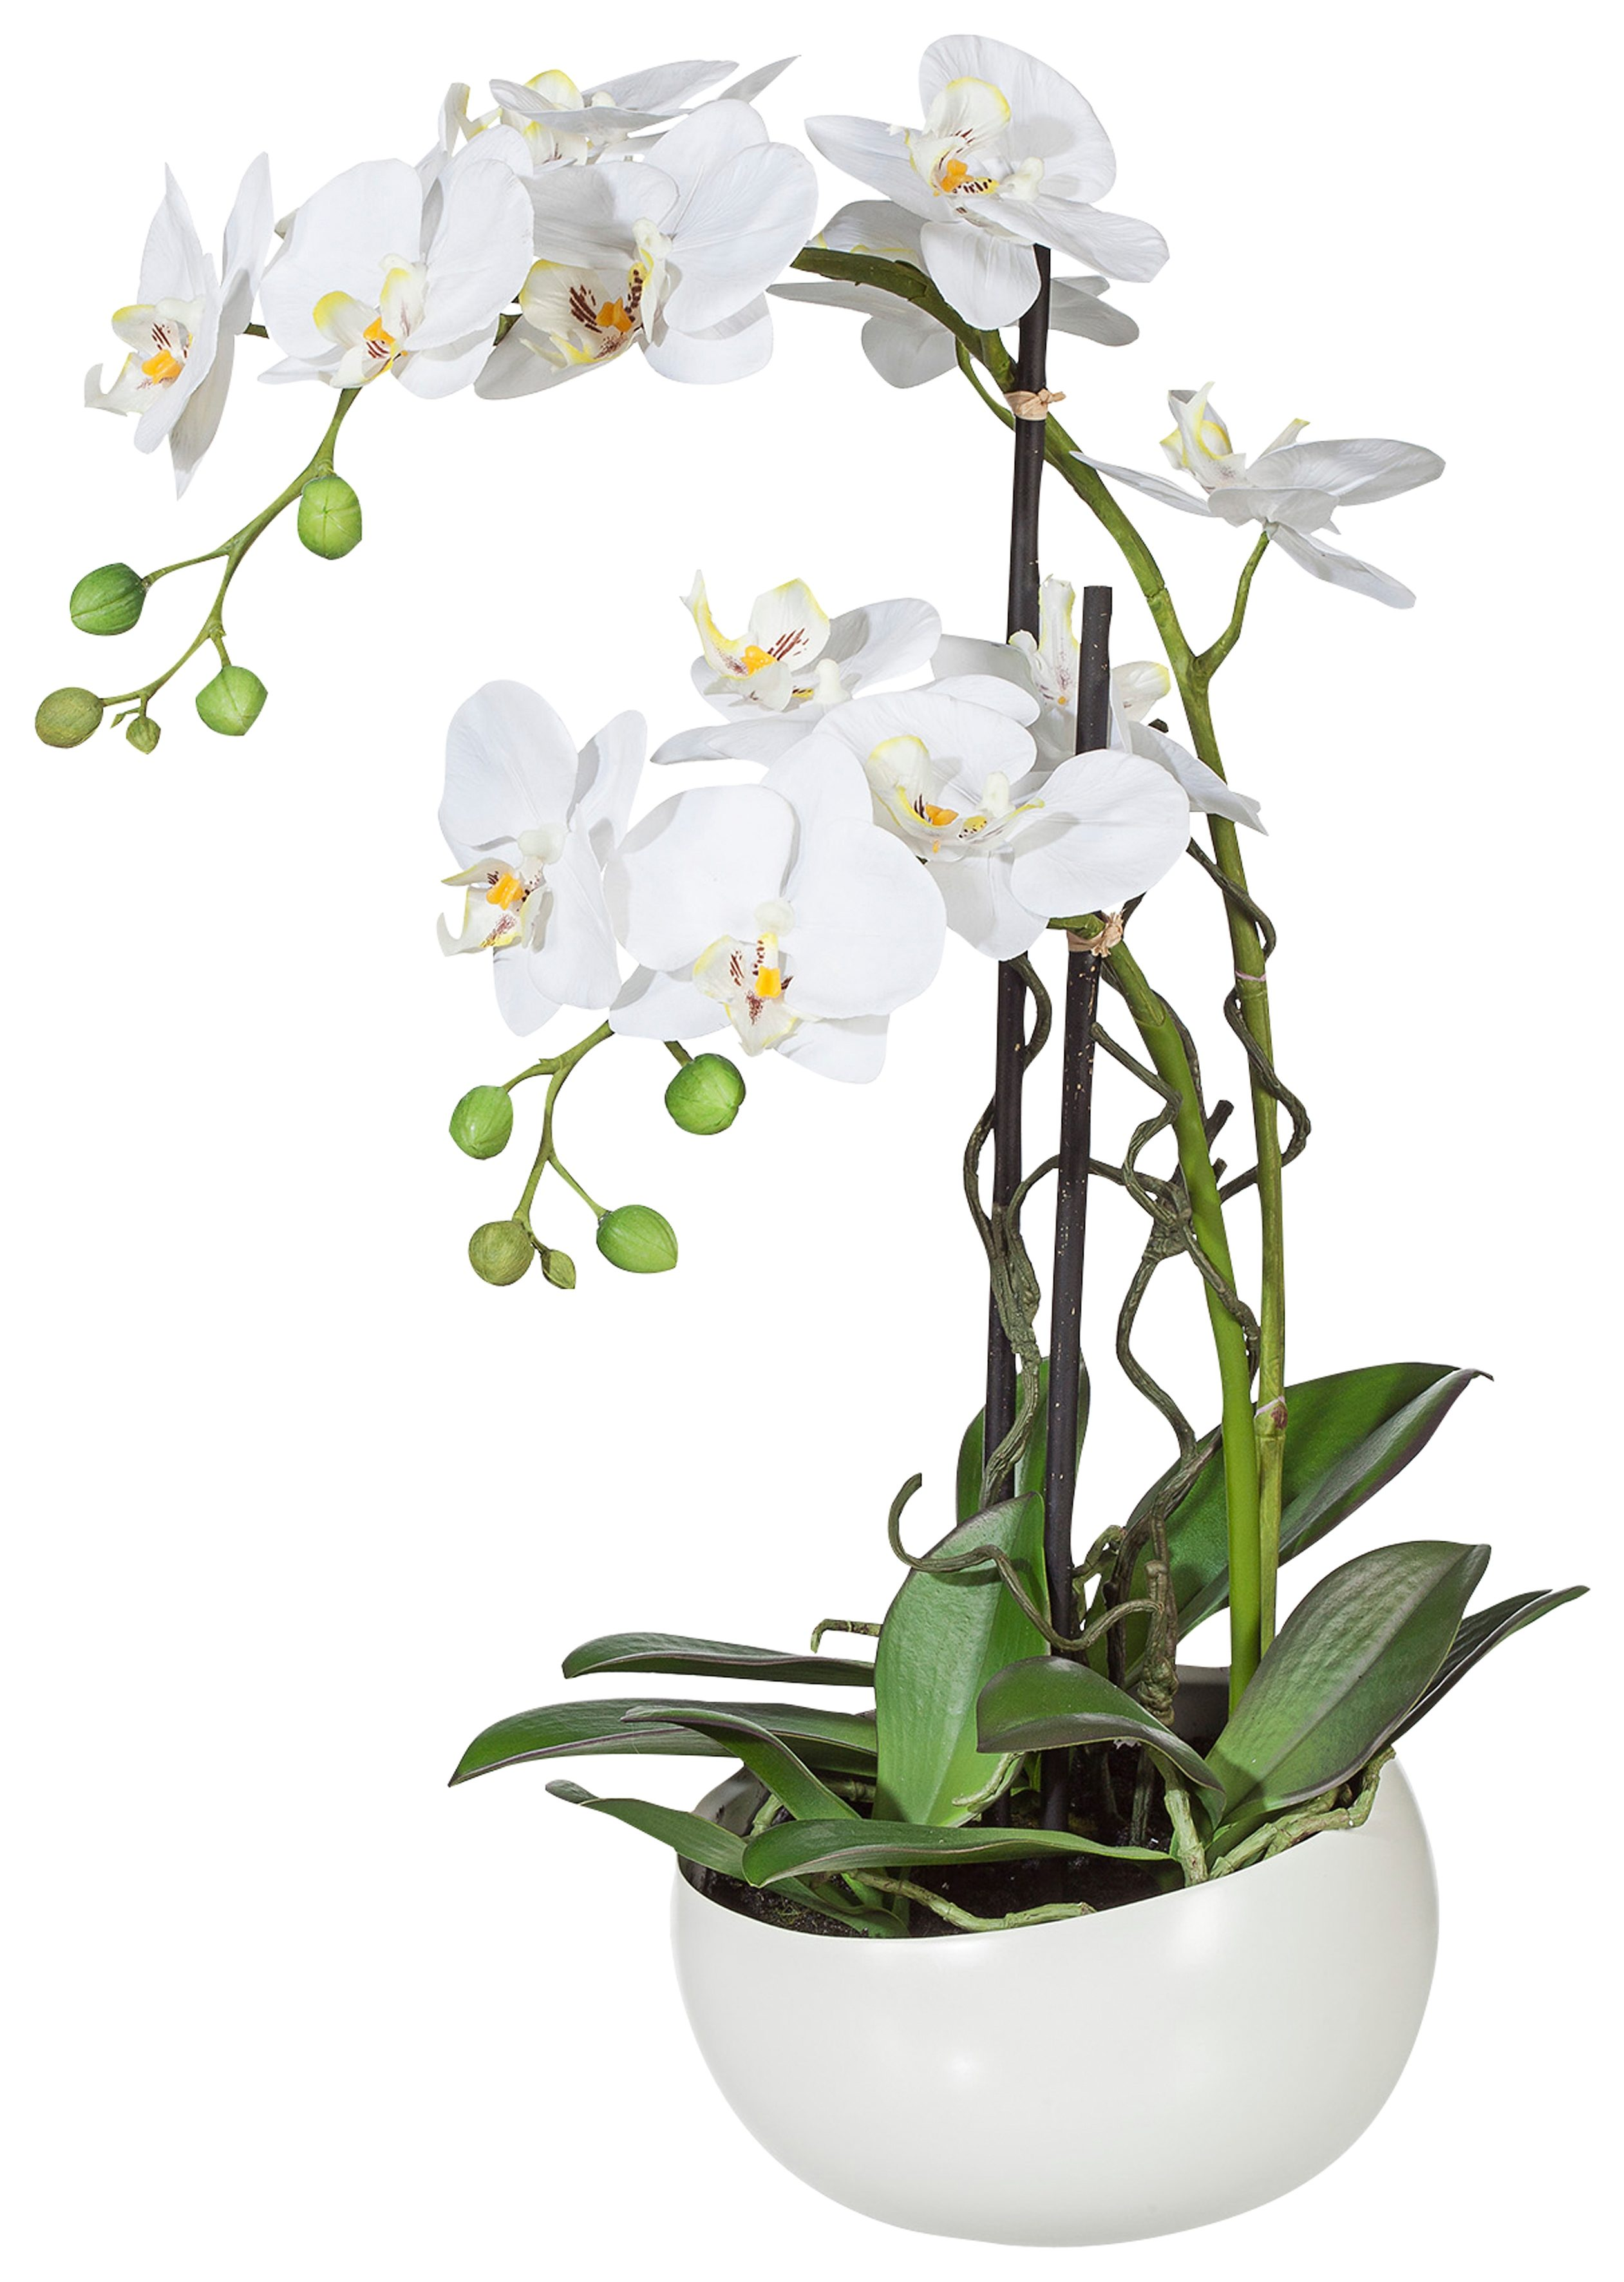 Home affaire Kunstblume »Orchidee« in einer Keramikschale